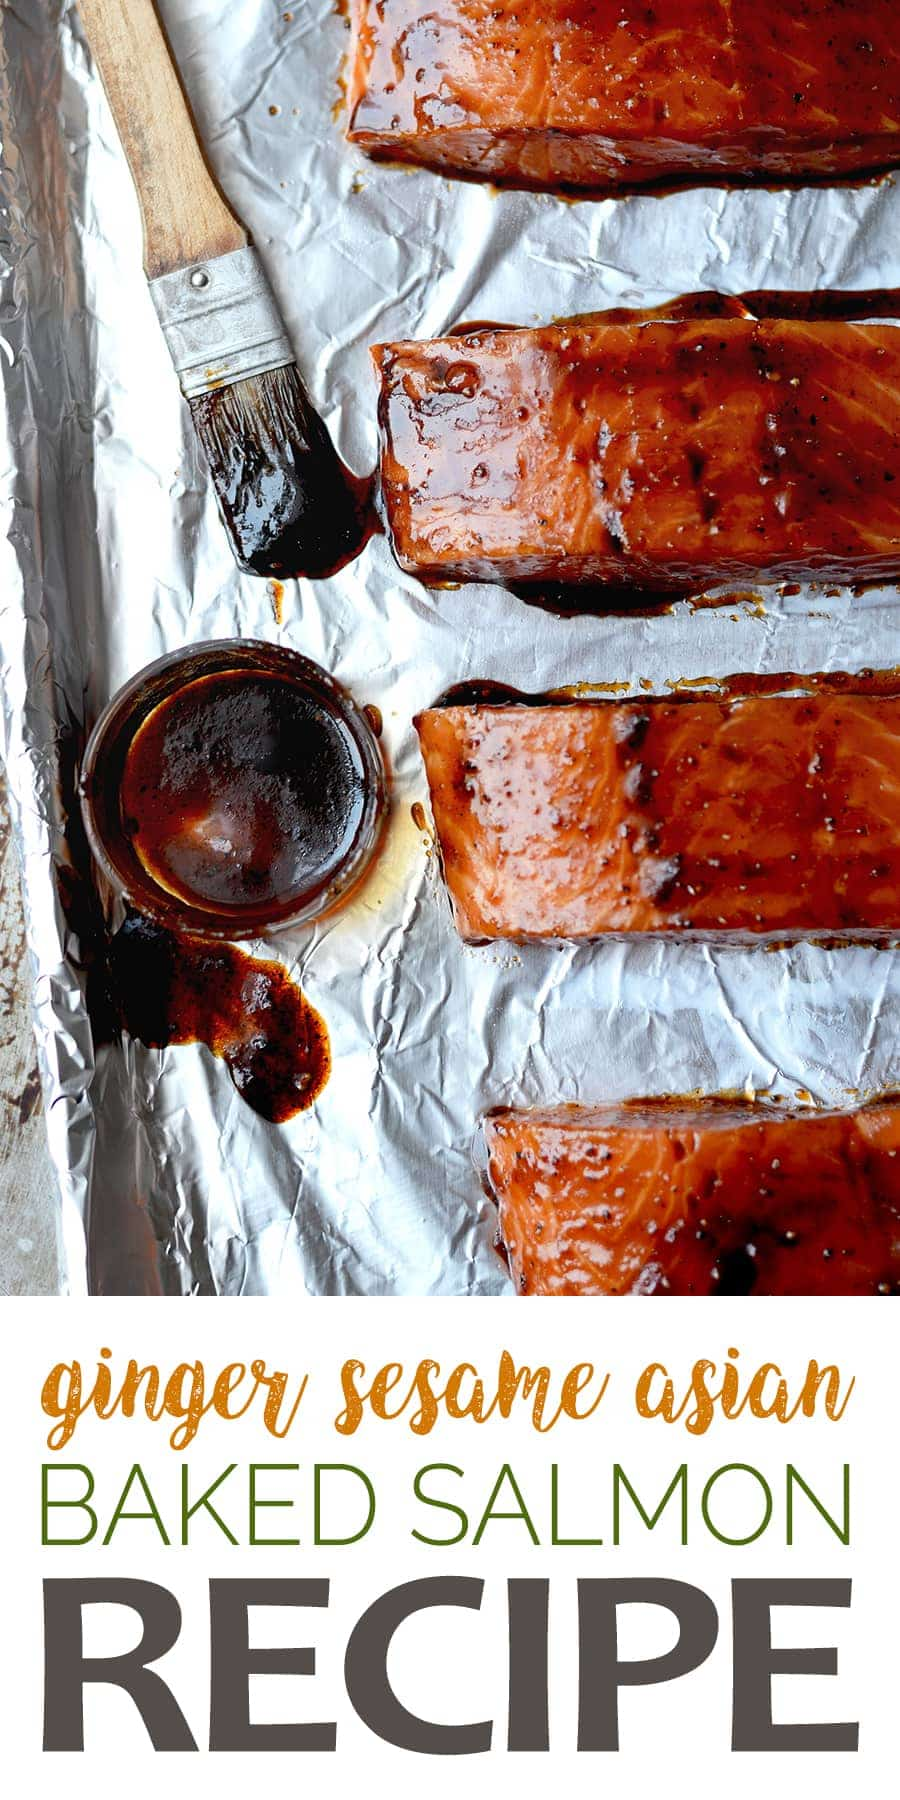 Incredibly Easy Asian Baked Salmon makes weeknights taste great! With this sesame ginger glaze, you don't have to compromise flavor for speed. #salmon #fishrecipe #sesameginger #glazedsalmon #dinnerideas